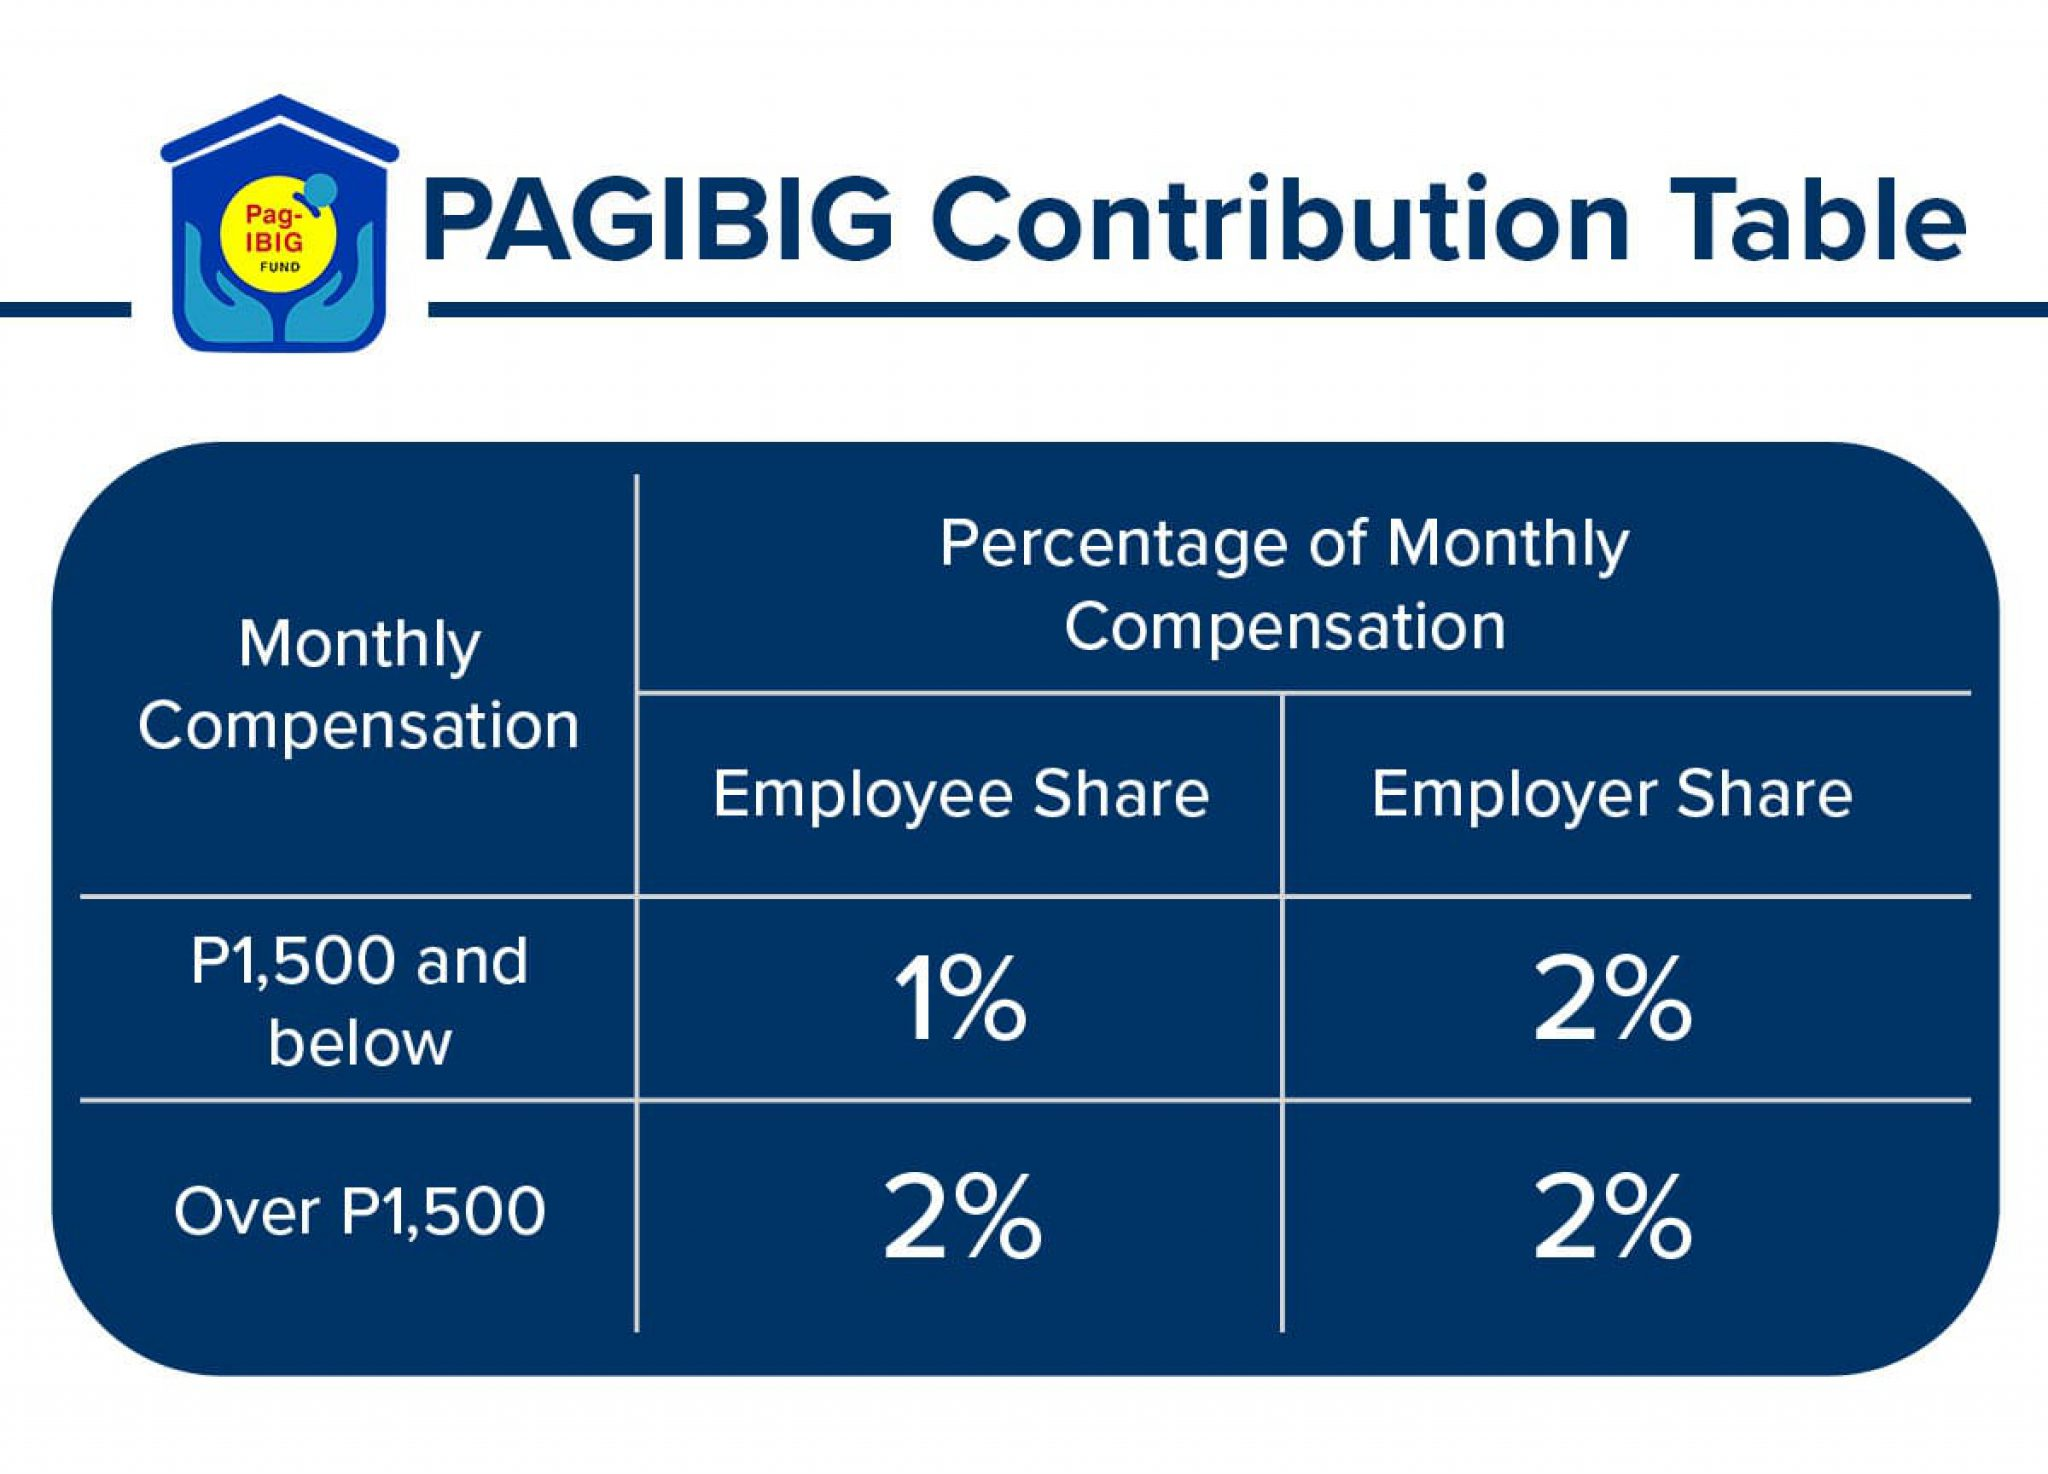 Pag ibig acquired assets 2019